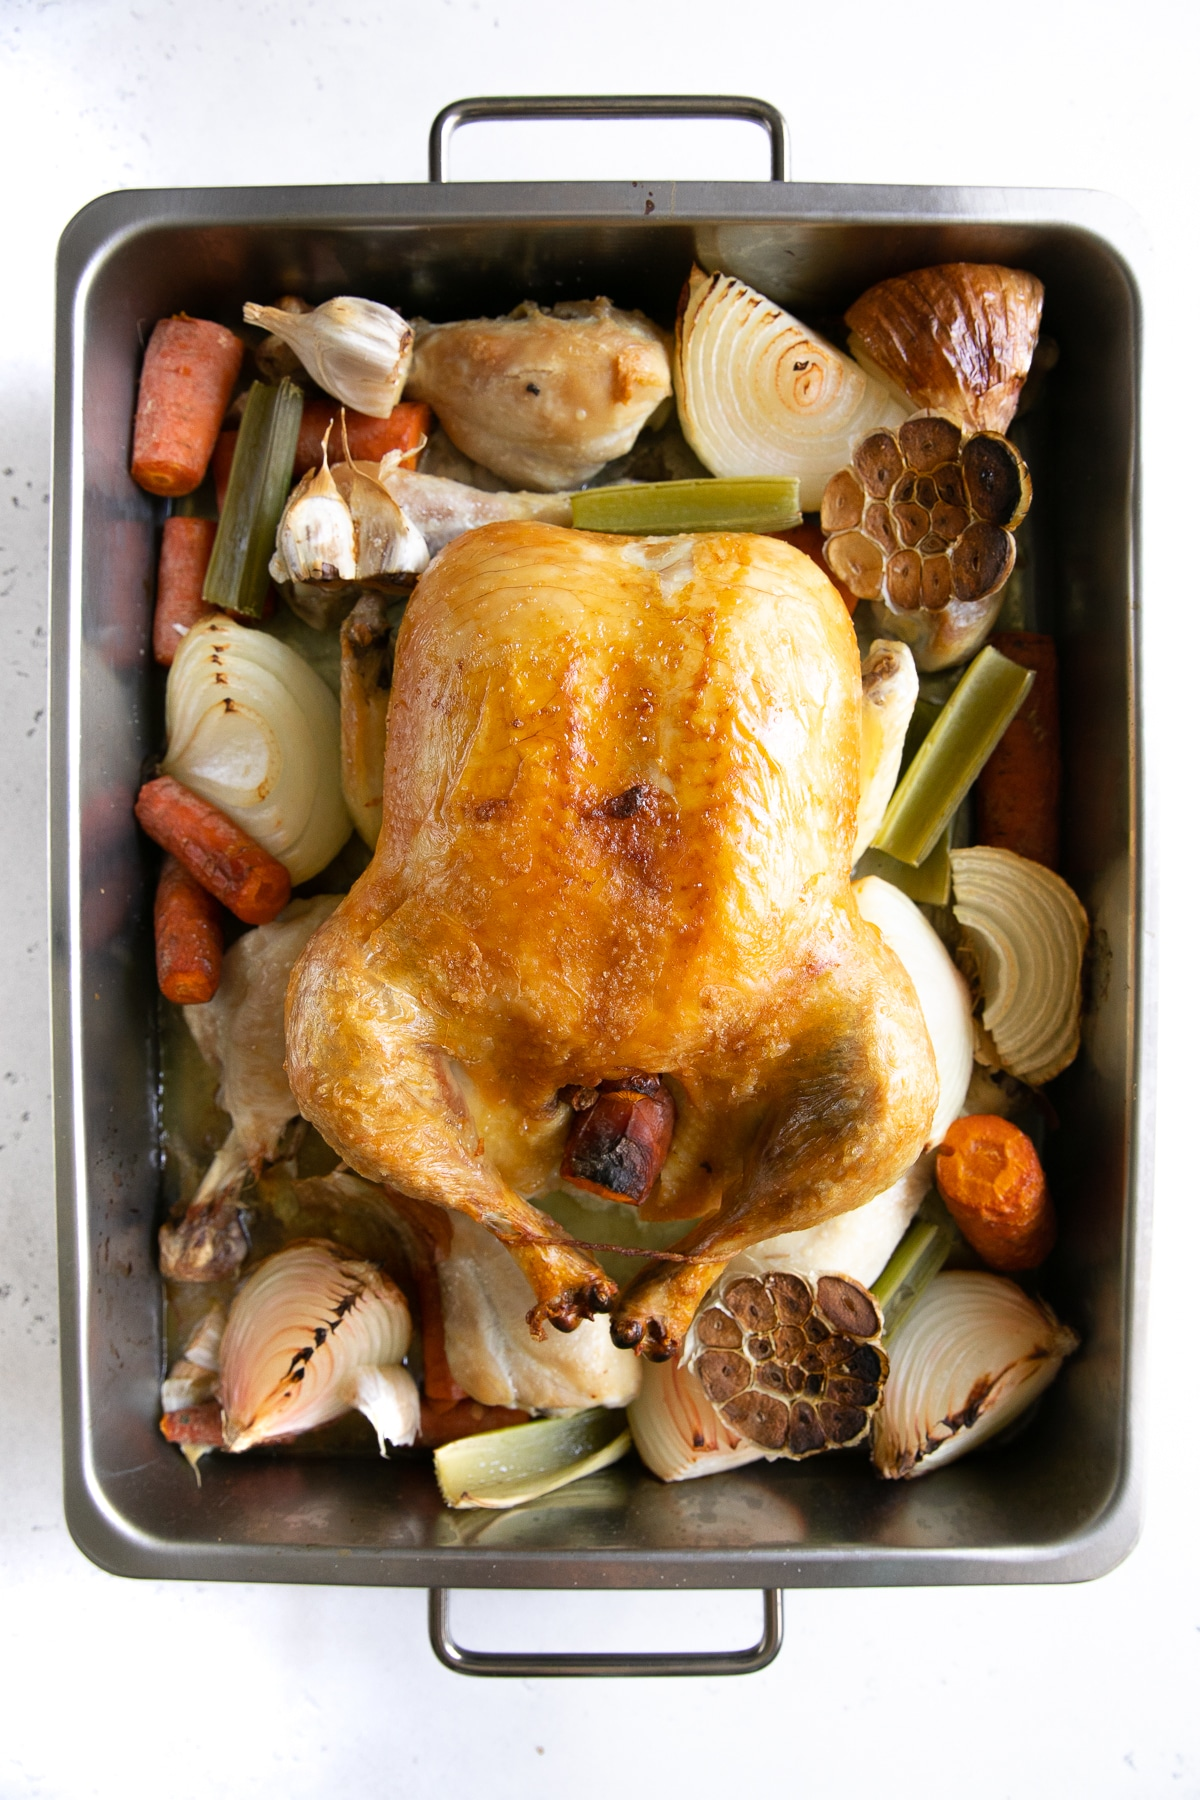 Whole browned chicken and vegetables in a large roasting pan.